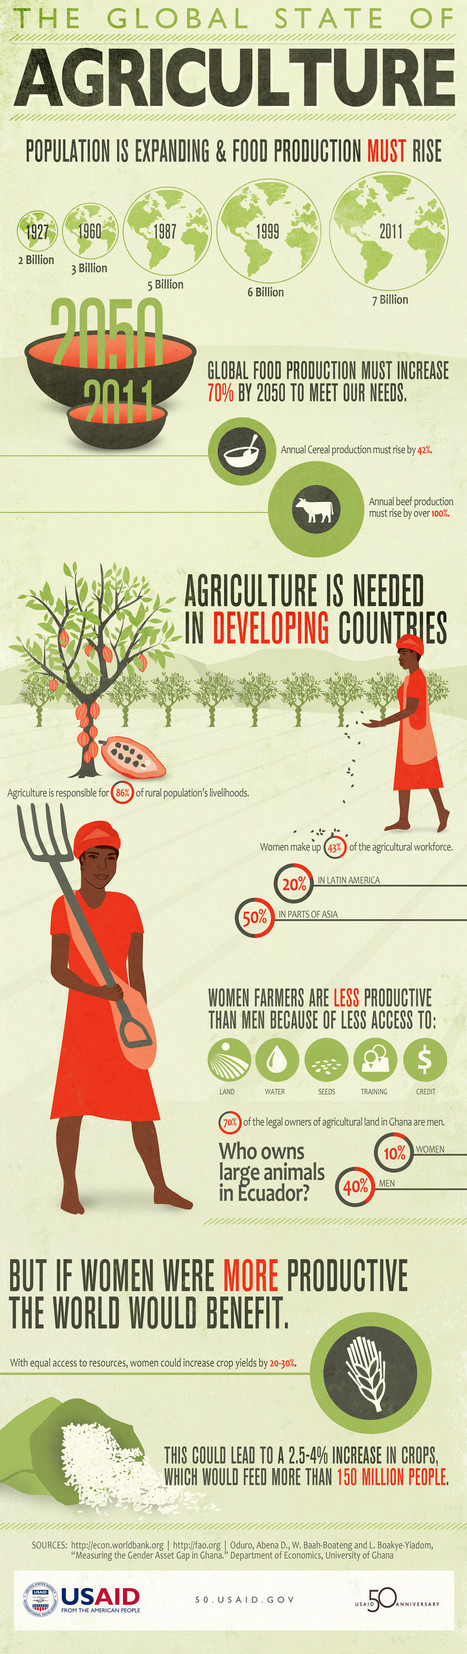 Global State of Agriculture | Mrs. Nesbitt's Human Geography World | Scoop.it